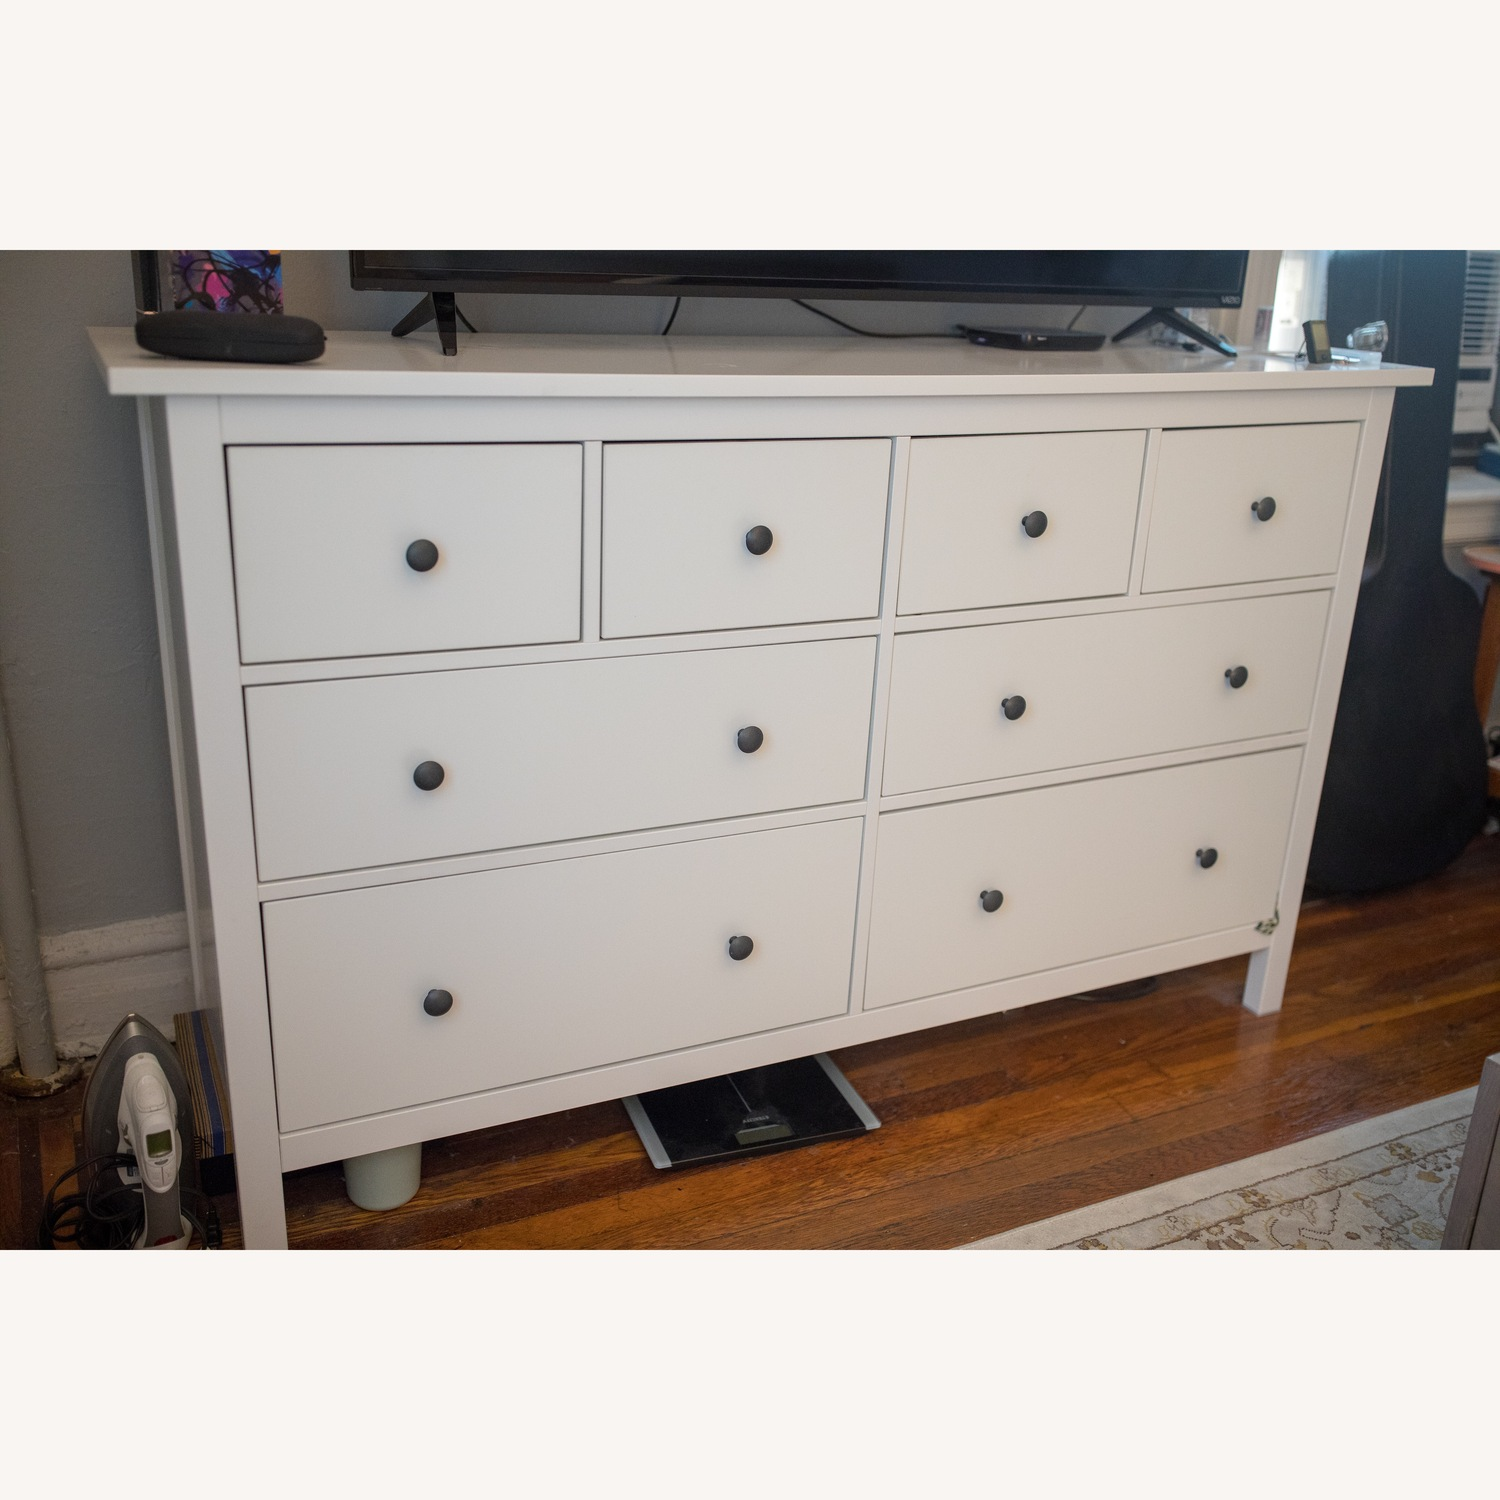 Ikea 8-drawer dresser